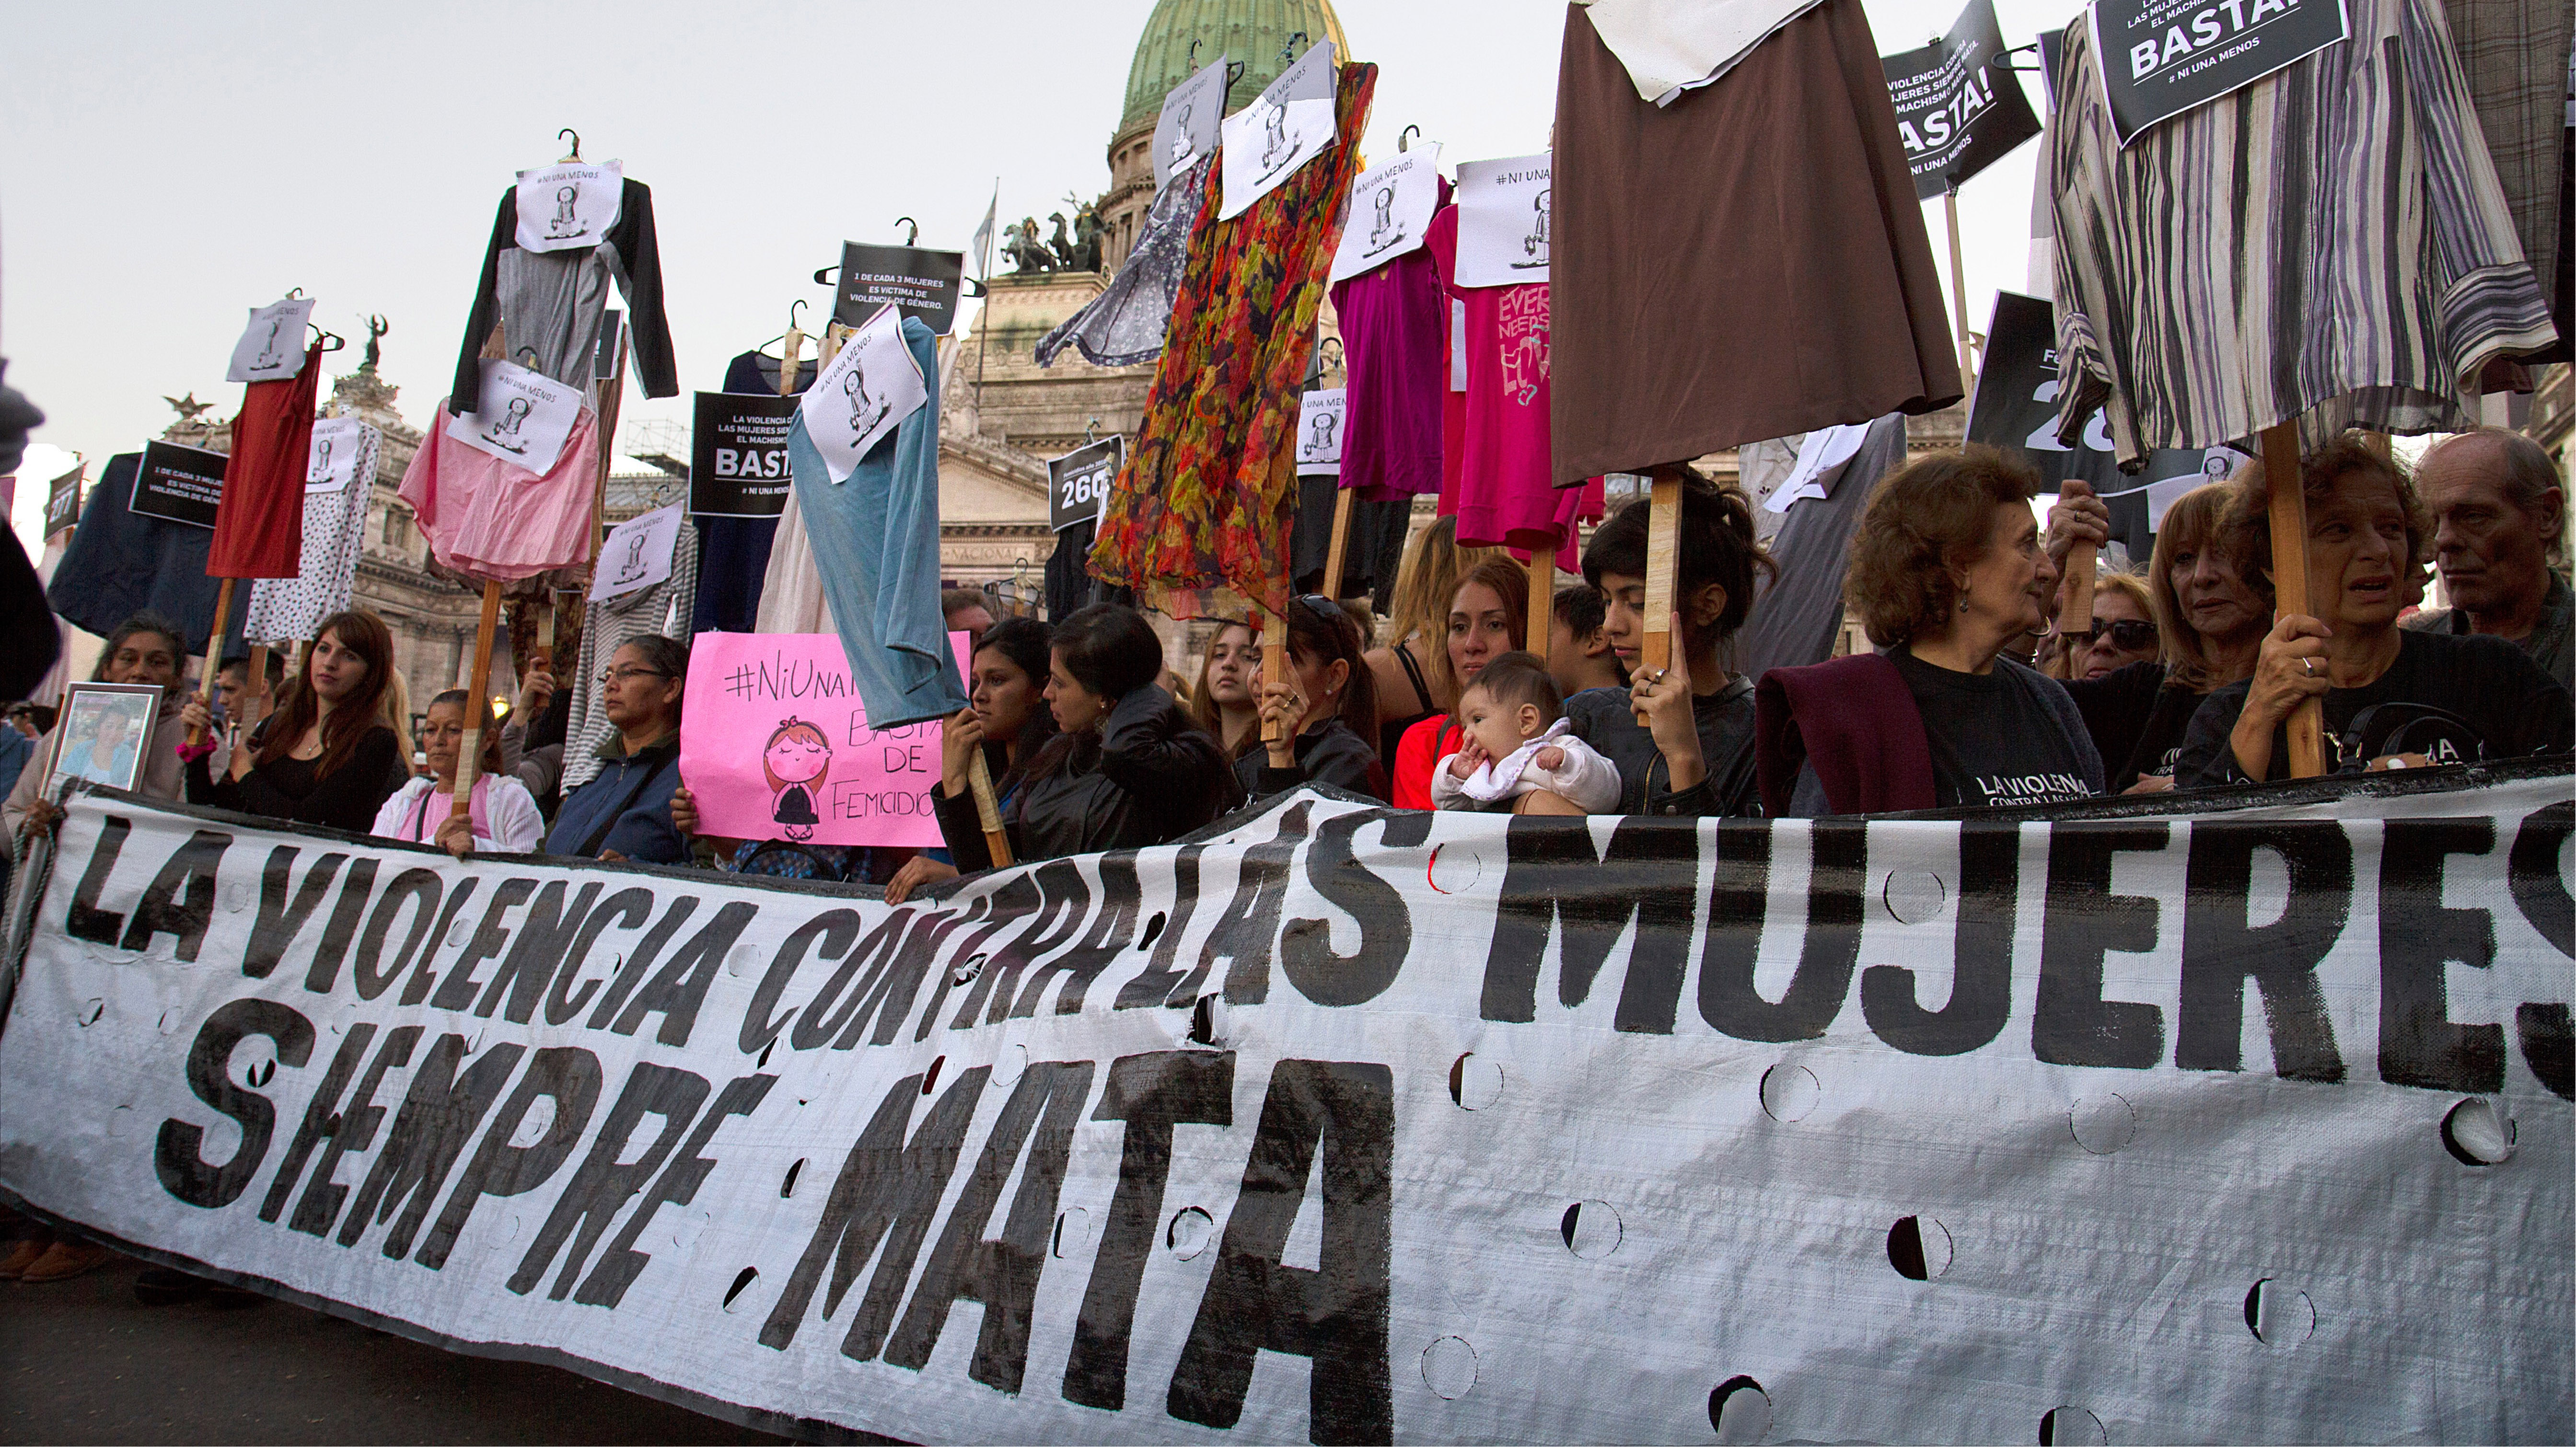 Image shows women marching on the street in protest to the femicide occurring in the country.